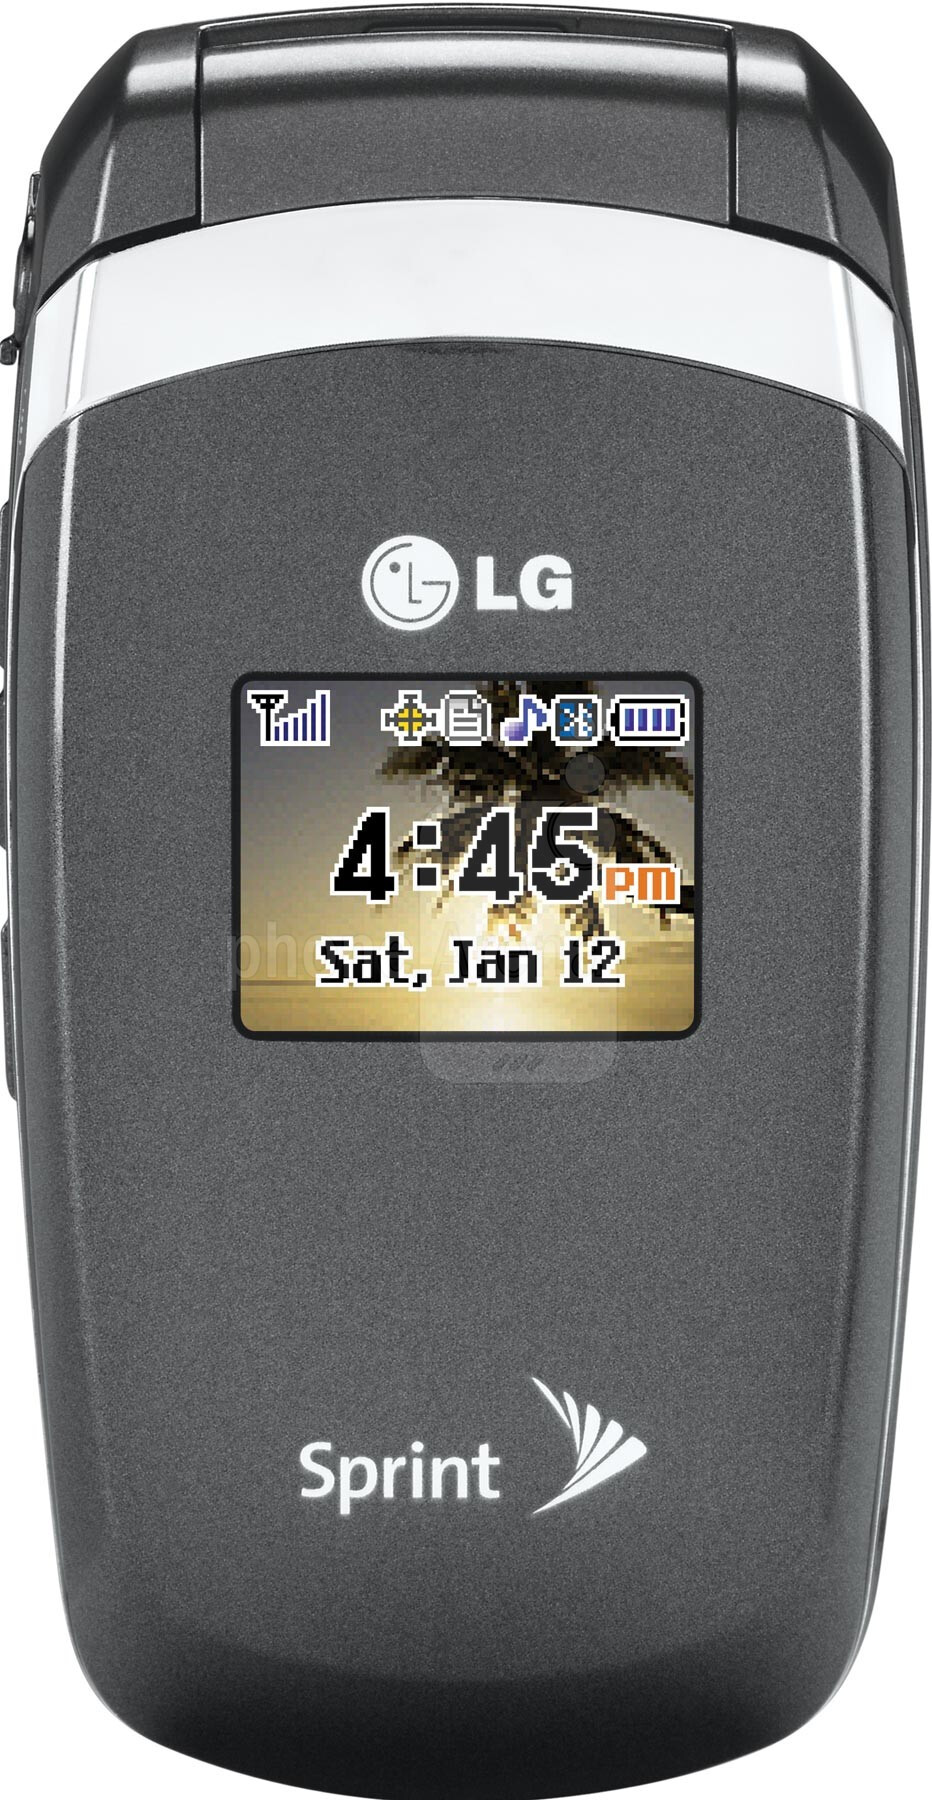 lg lx160 size real life visualization and comparison rh phonearena com LG Television Manual LG Touch Phone Operating Manual